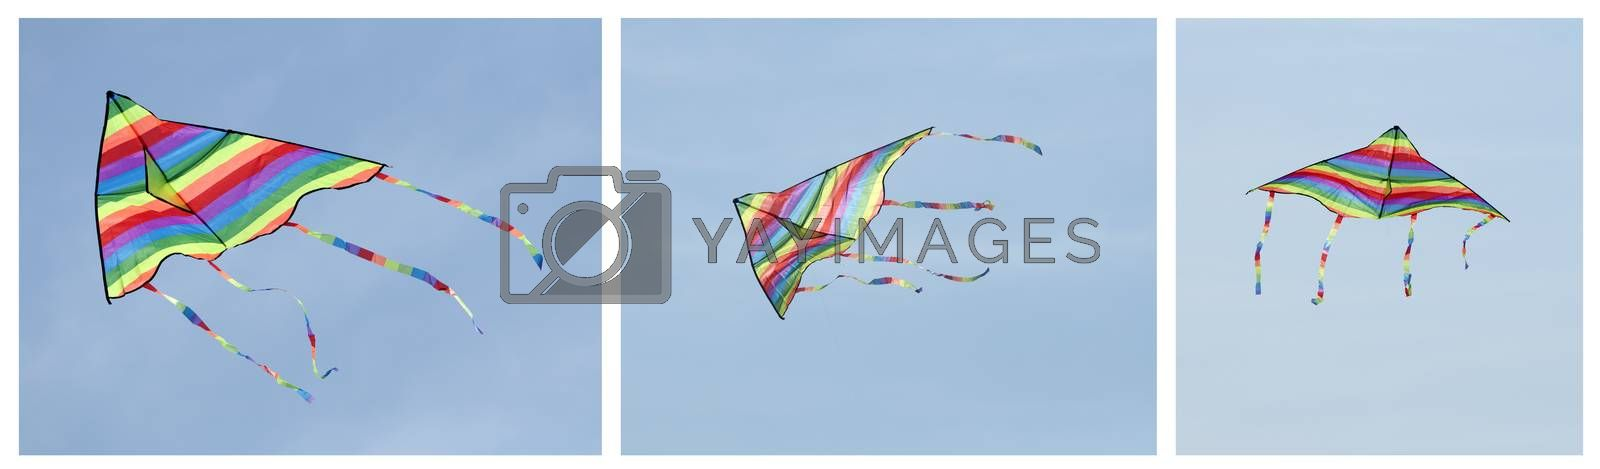 Multicolored kite on blue sky background. Tree images